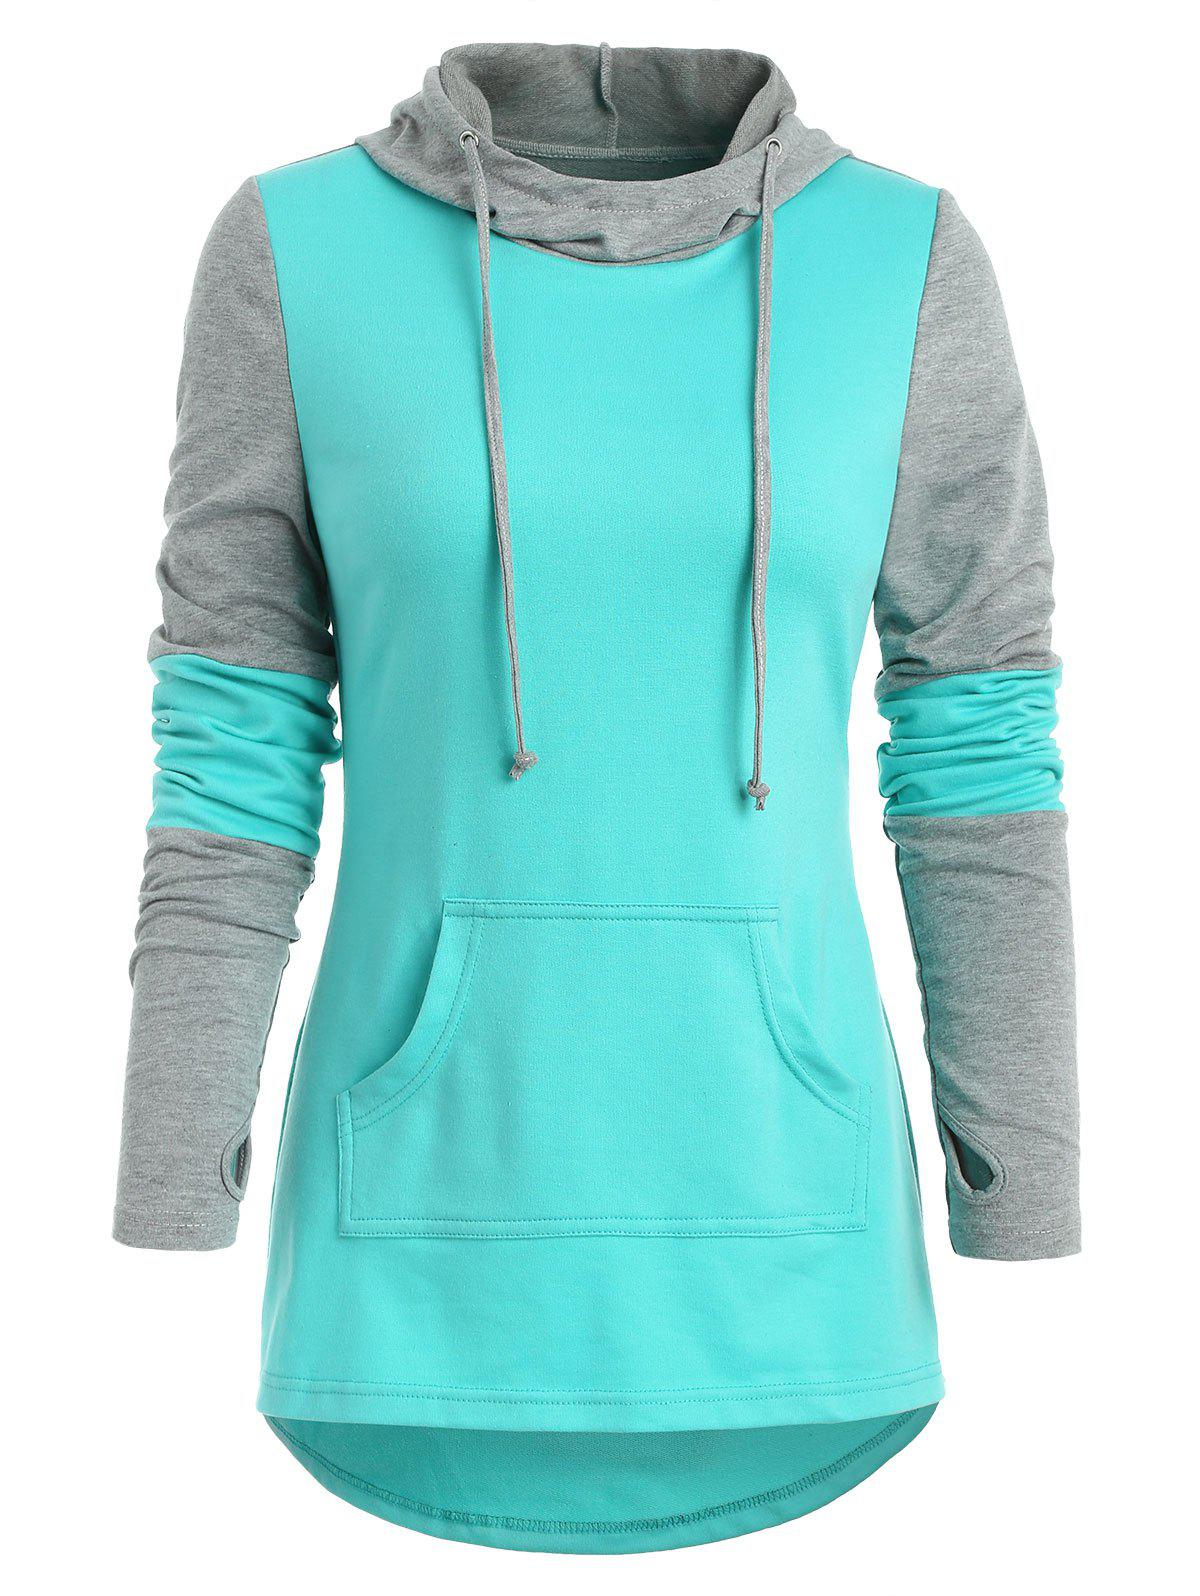 Fashion Kangaroo Pocket Armhole Color Block Hoodie